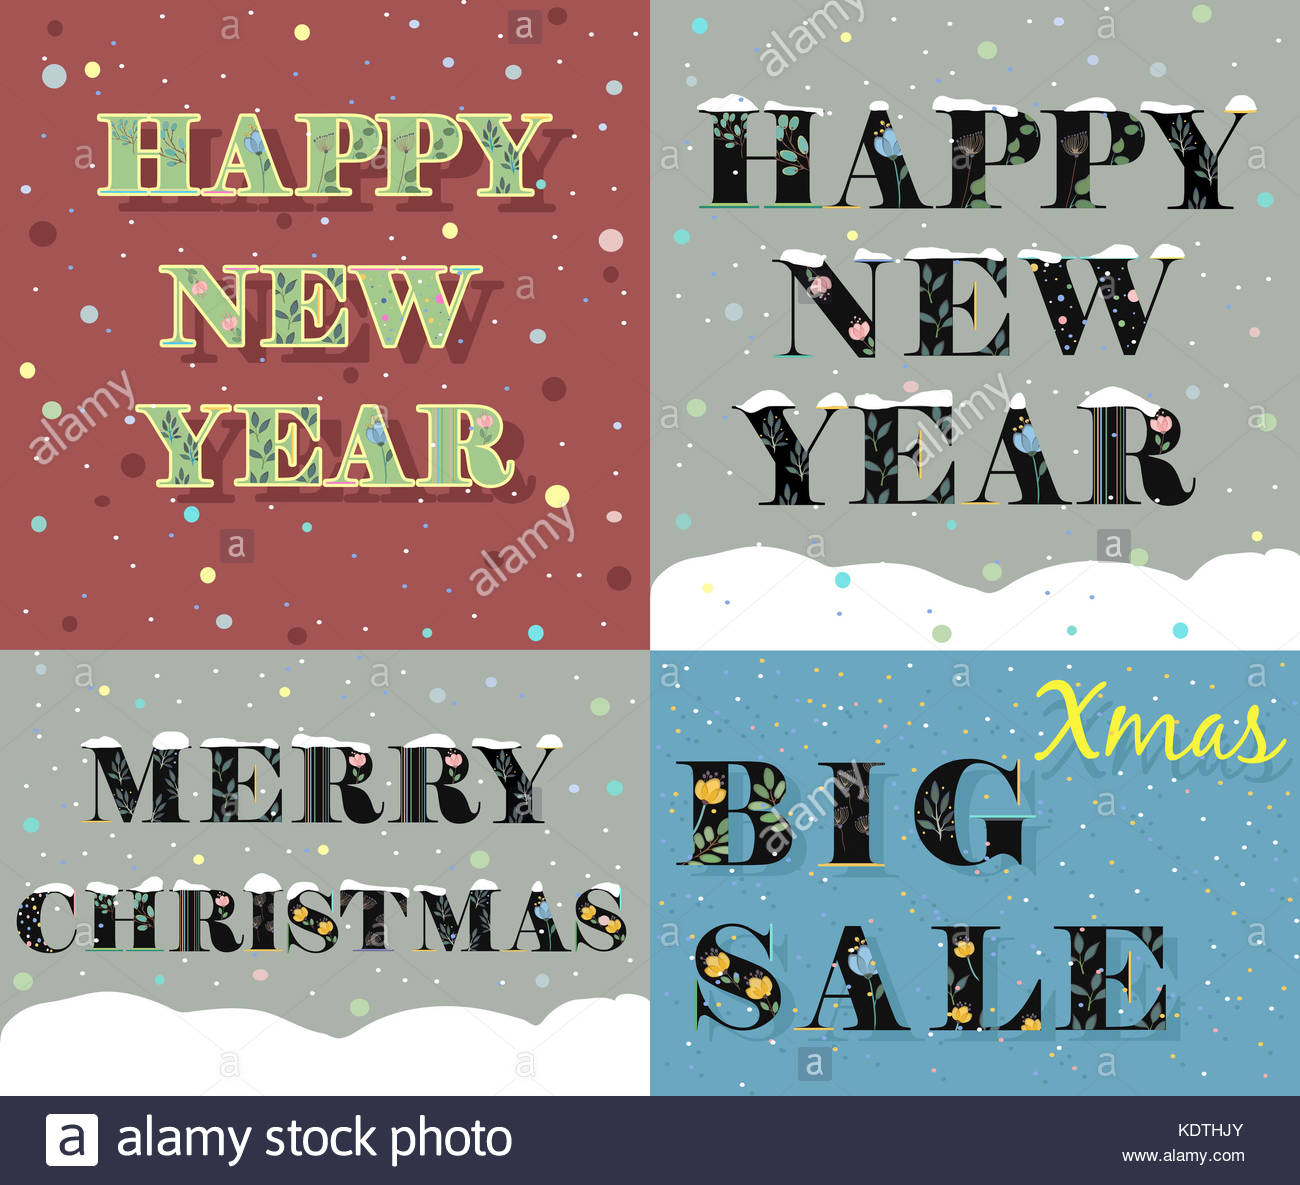 New Year And Christmas Greeting Cards Artistic Fonts Letters With Watercolor Flowers Texts